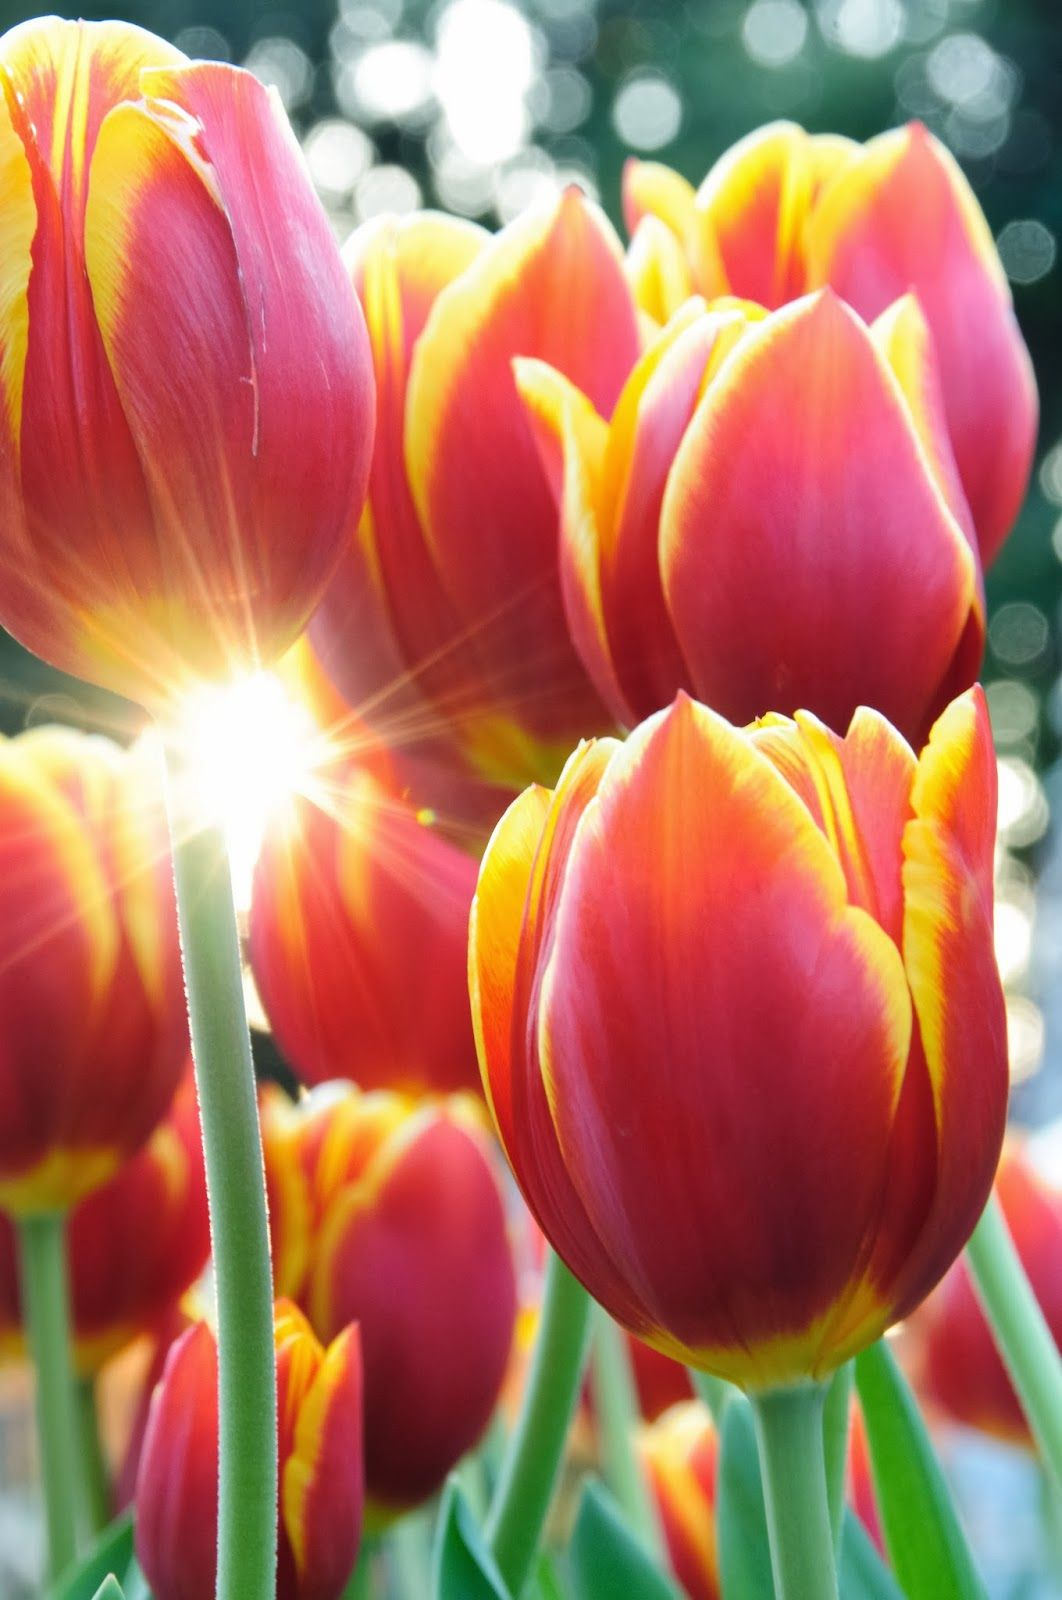 Beautiful spring time flowers tulips photography flowers beautiful spring time flowers tulips photography mightylinksfo Image collections